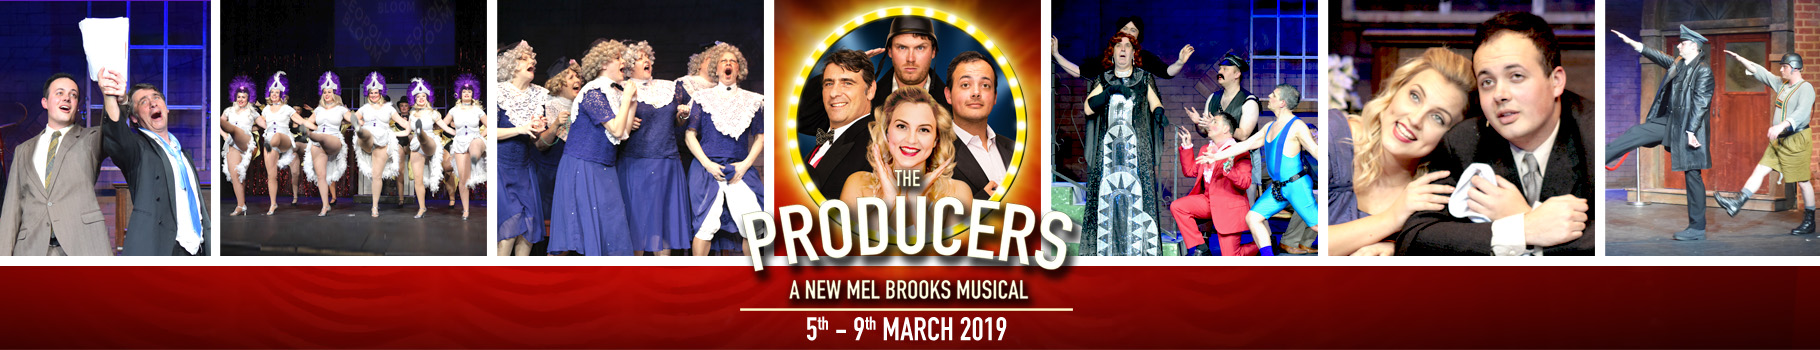 19-03 The Producers Web PHOTOS